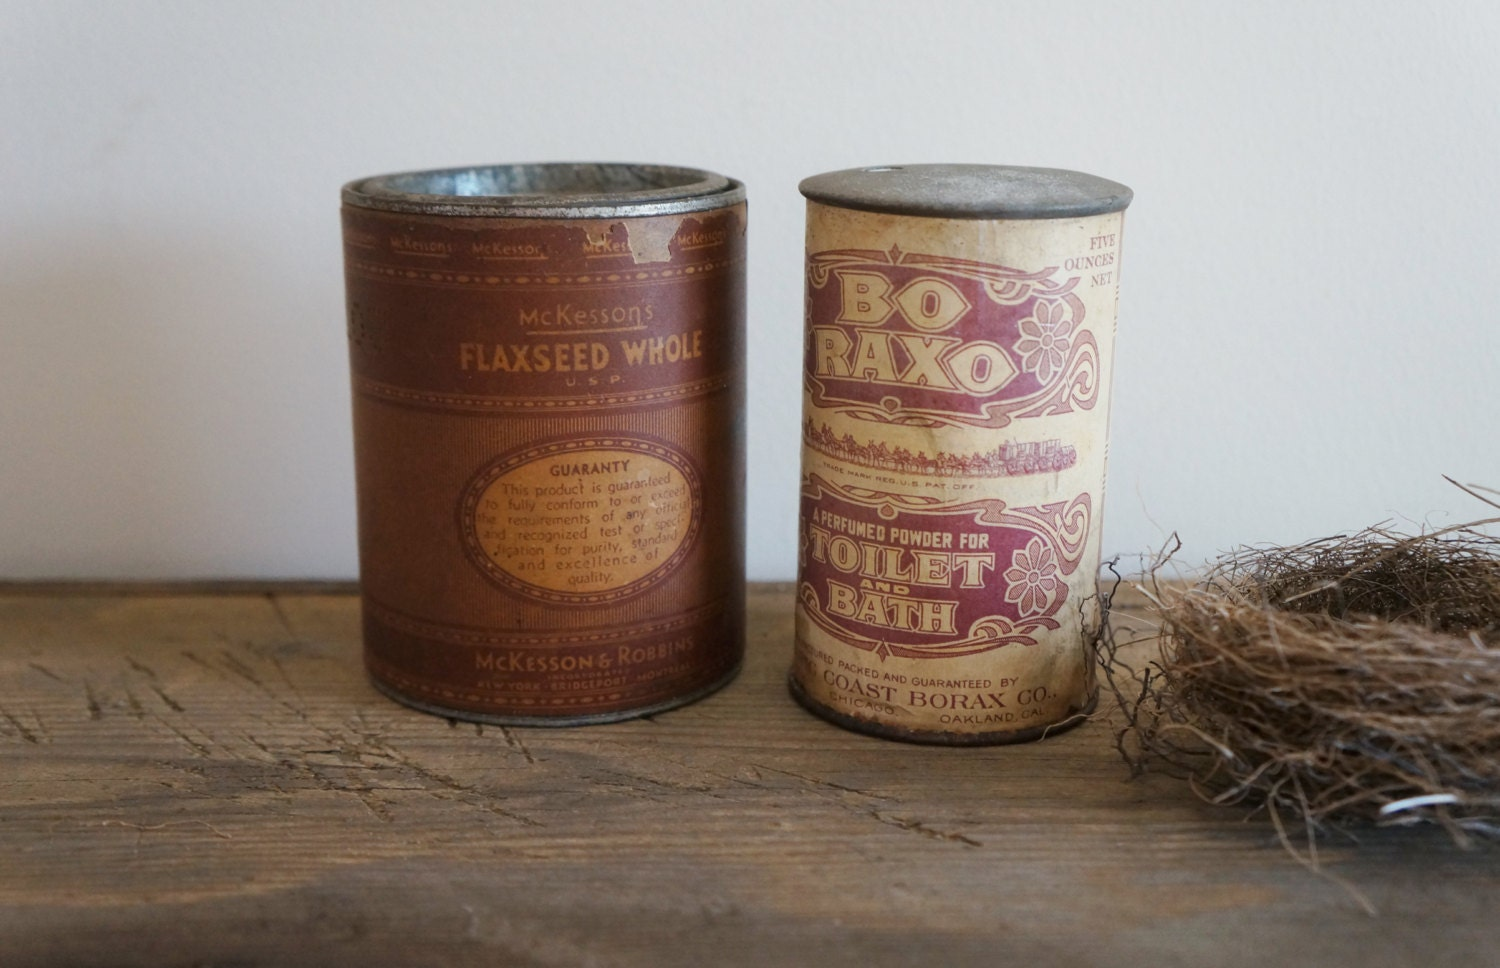 Collectible Tins,  Antique Boraxo Tin, Antique McKesson's Tin, Antique Tin Cans with Labels and Contents, Farmhouse Decor - RedHillHome